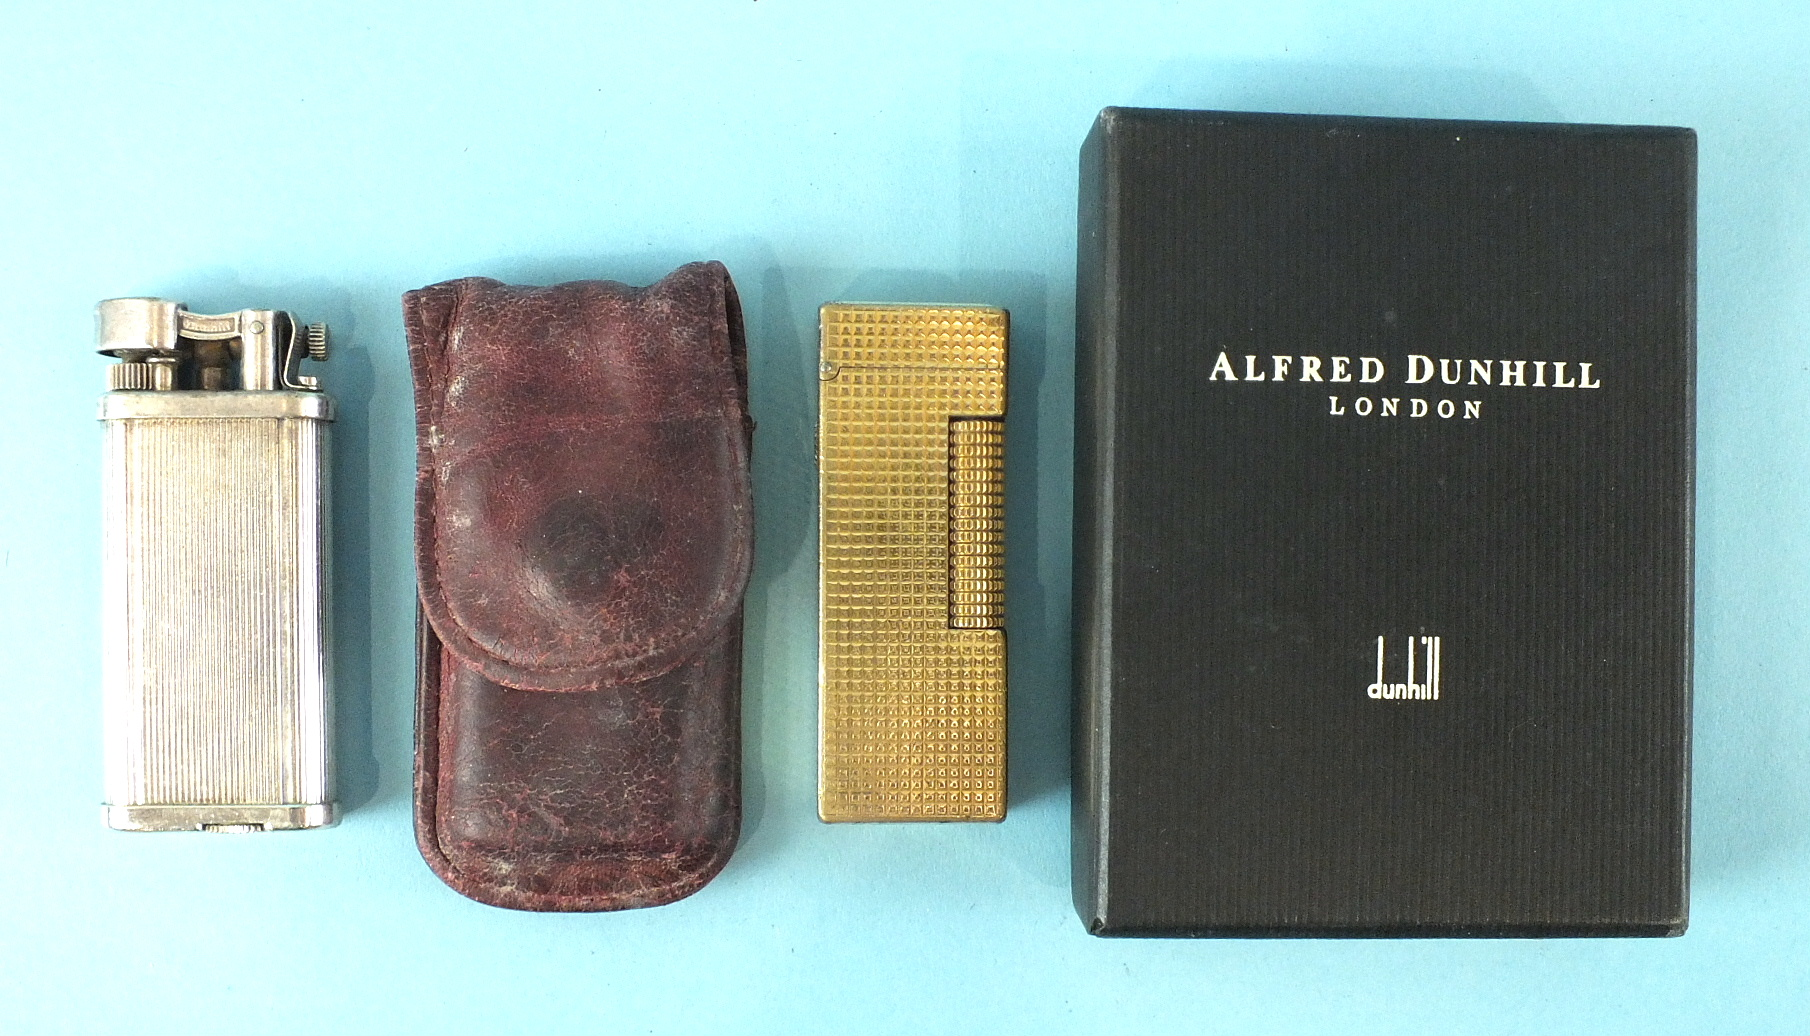 Lot 123 - A Dunhill 'Unique' lighter numbered 480735, in pouch and a Dunhill gold-plated lighter in worn